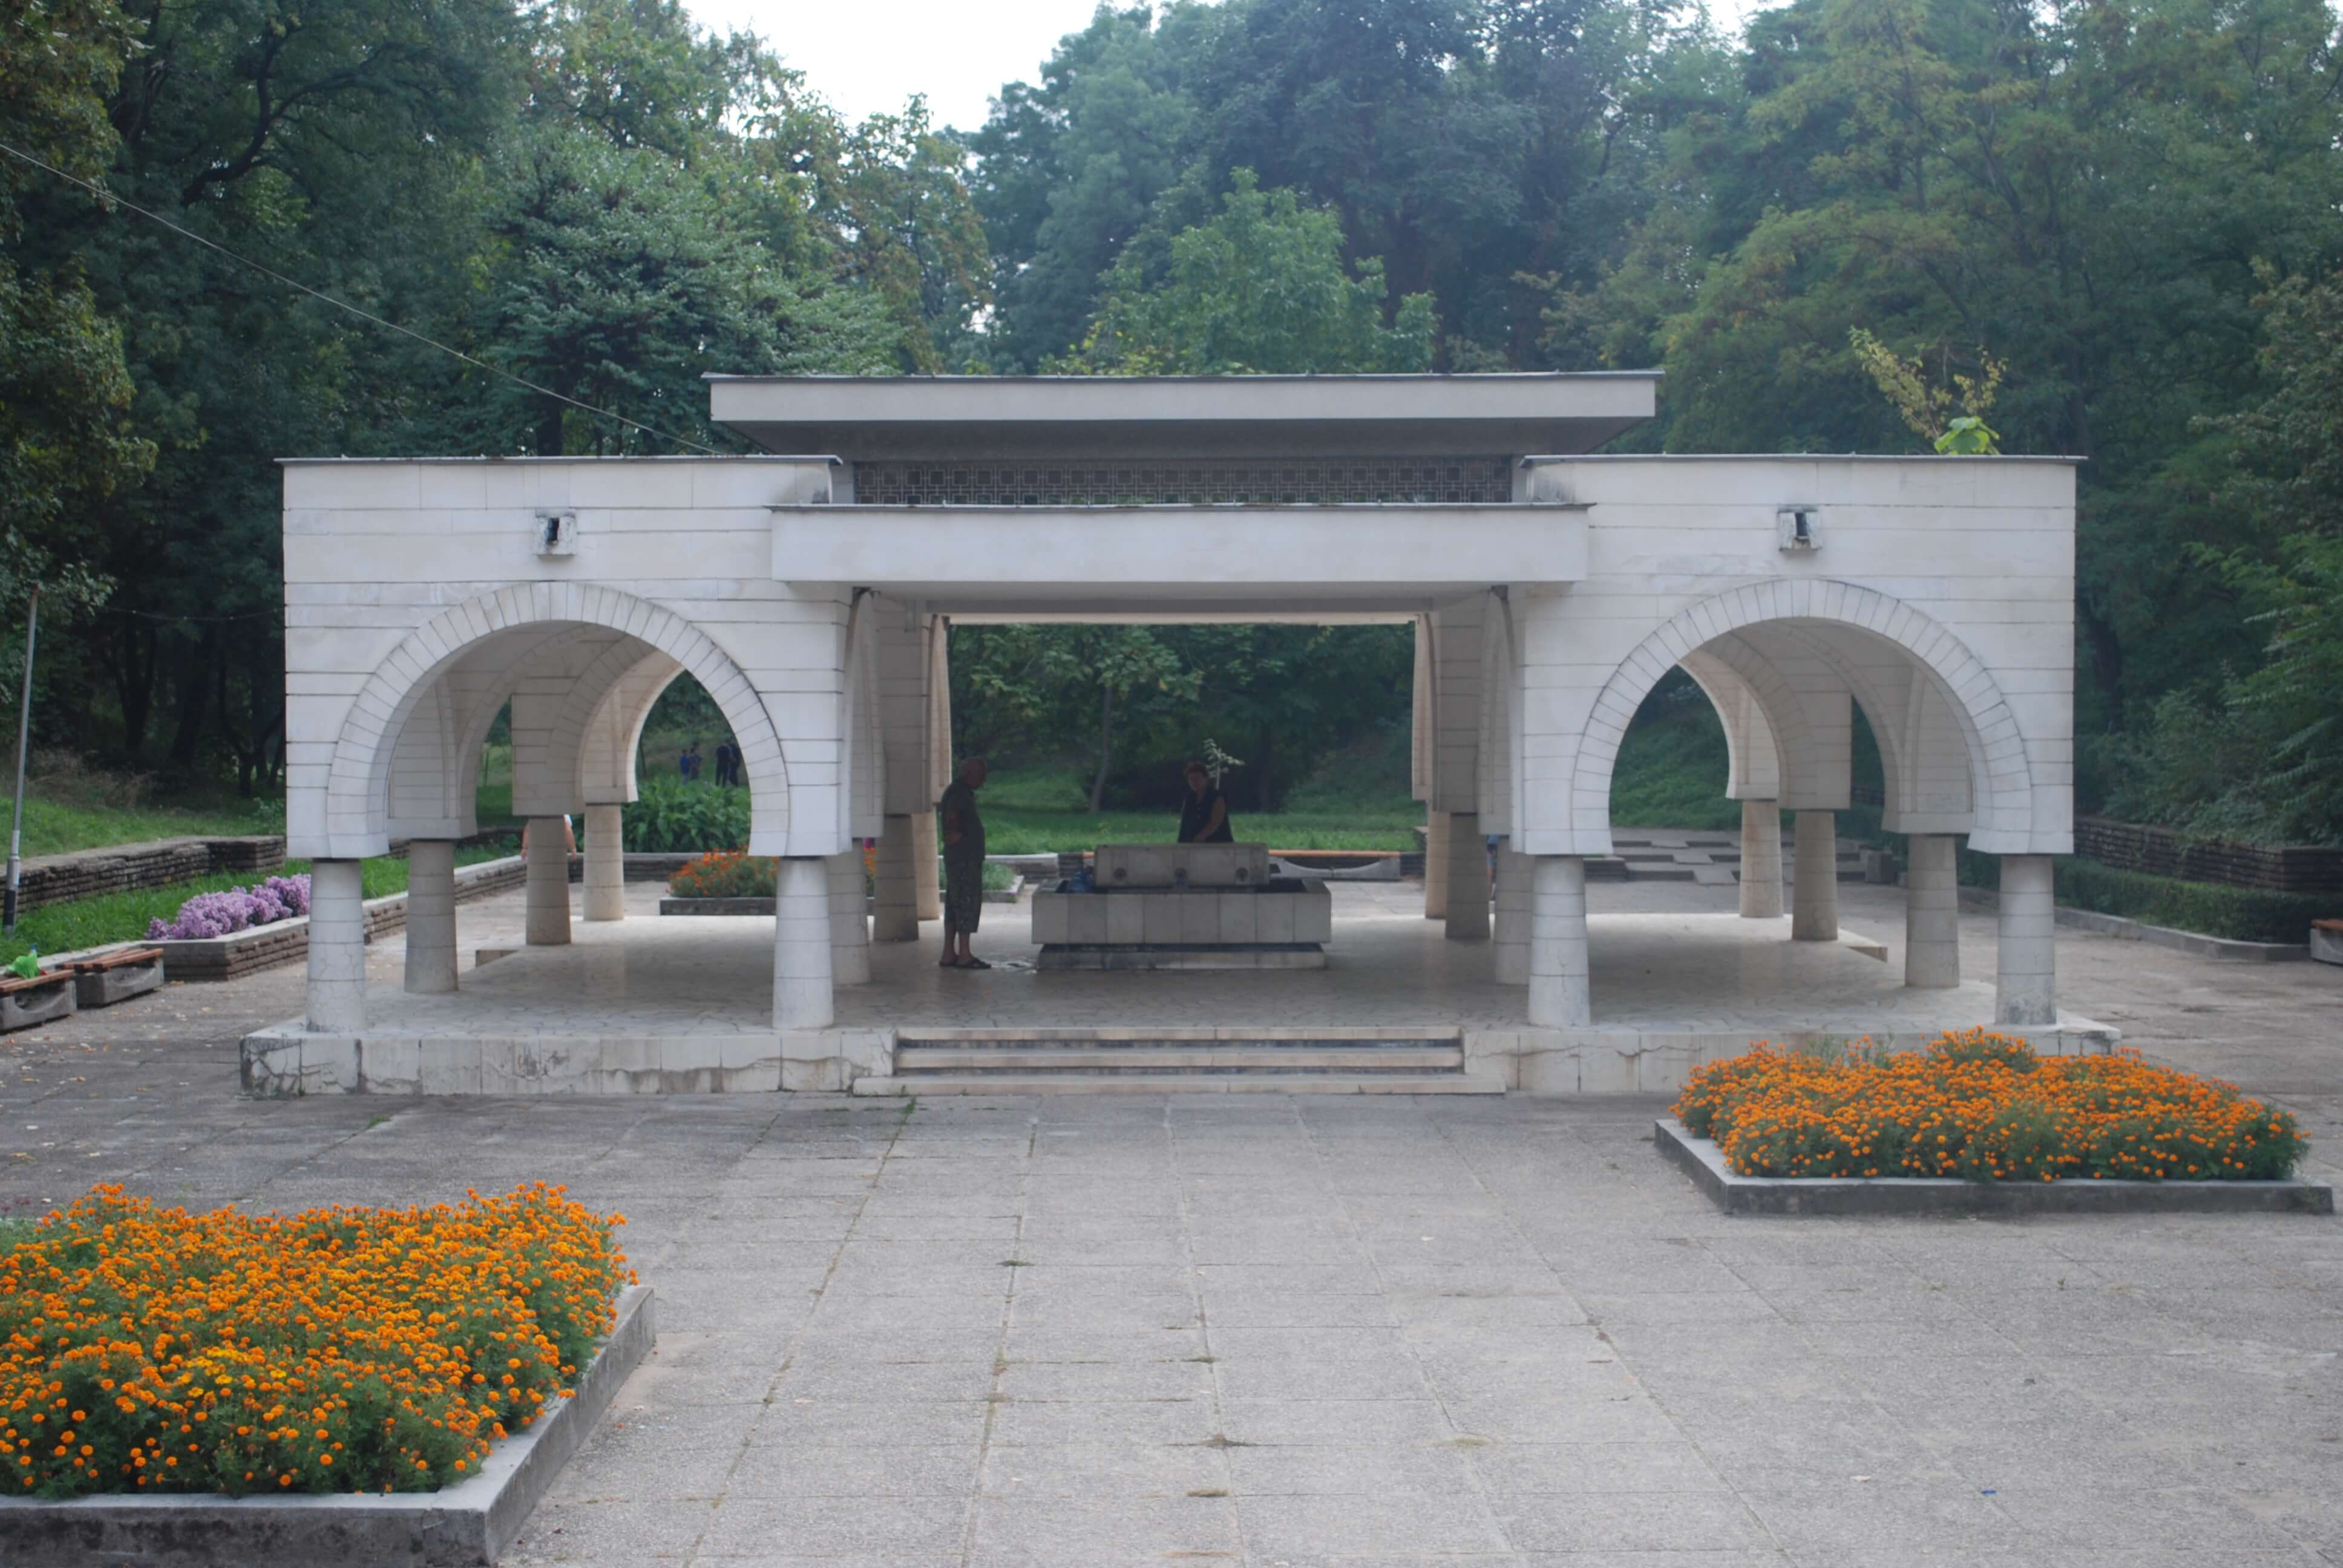 One of the many public mineral water fountains in Hisarya